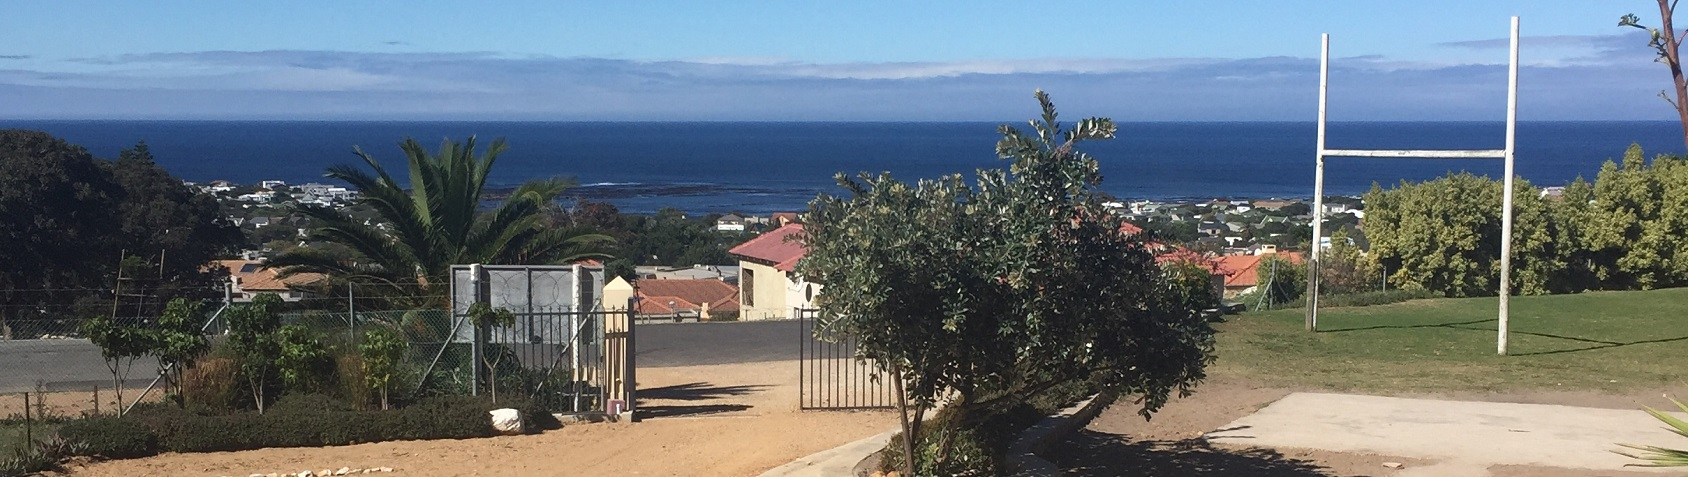 northcliff house college, school, hermanus, education